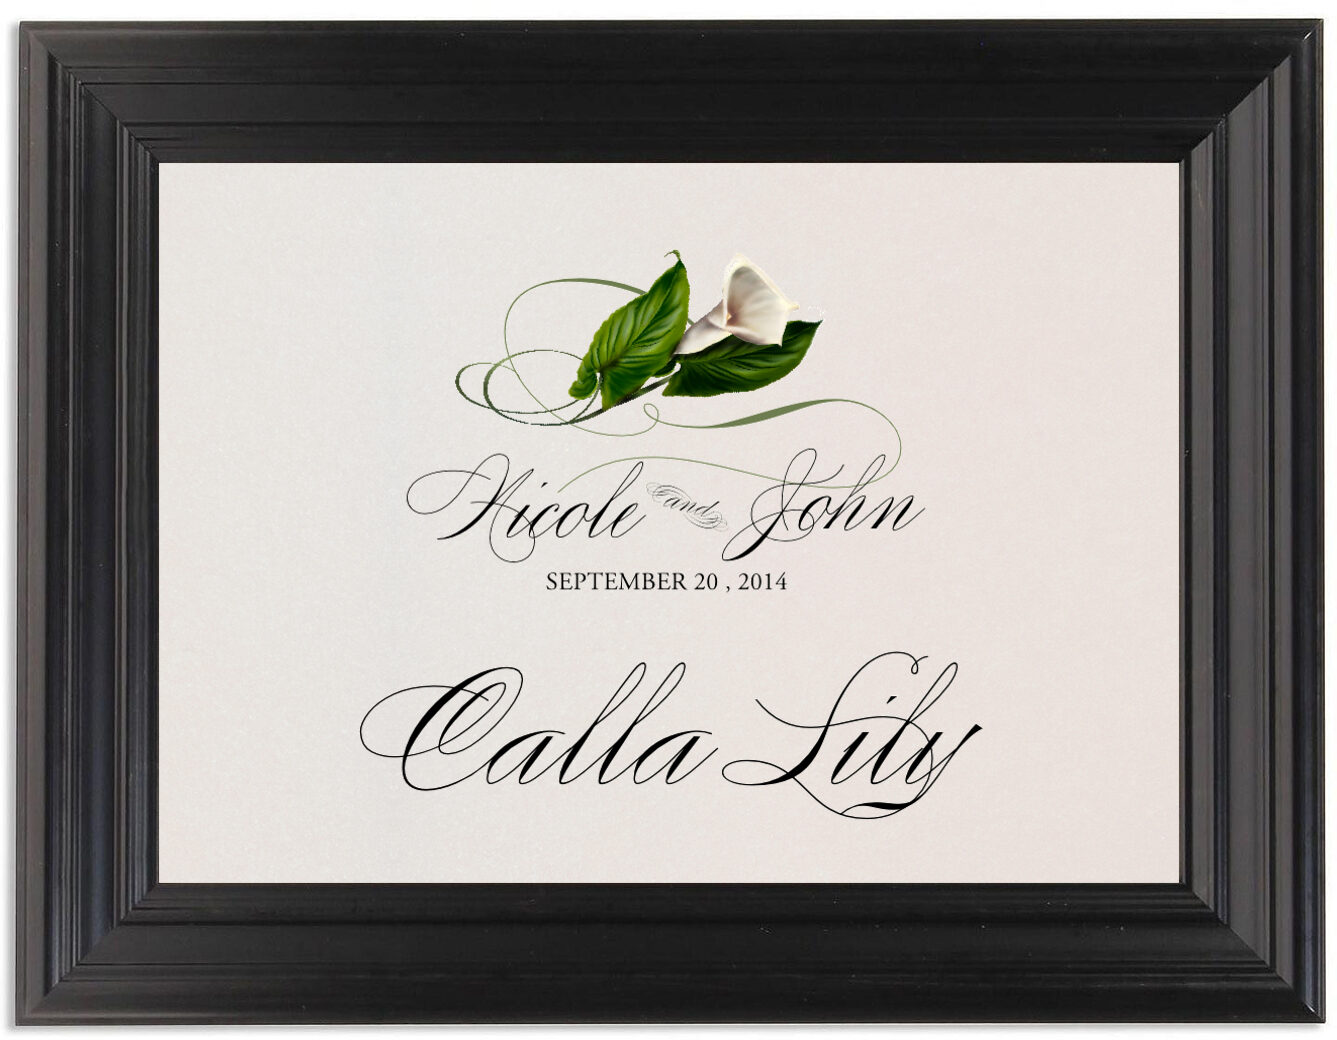 Framed Photograph of Calla Lily Swirl Table Names